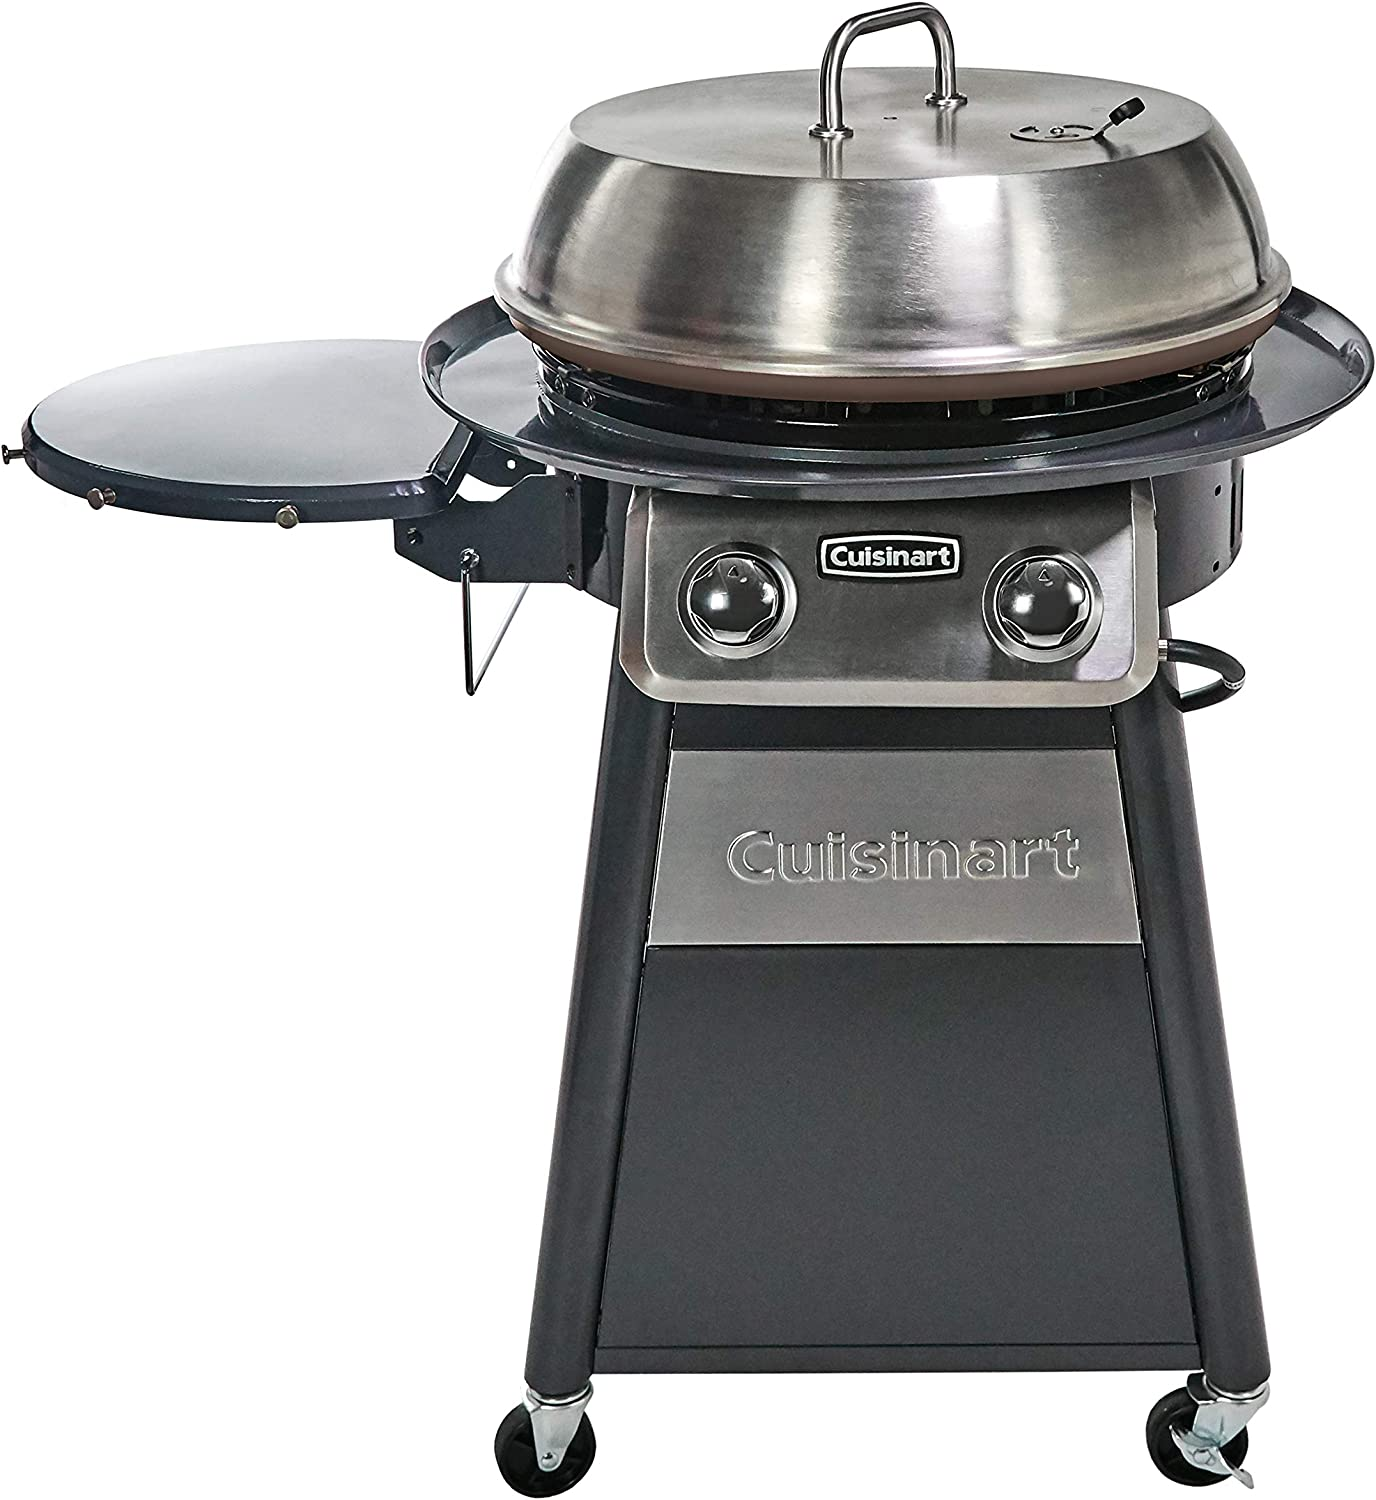 Best for novice: Cuisinart CGG-888 Grill